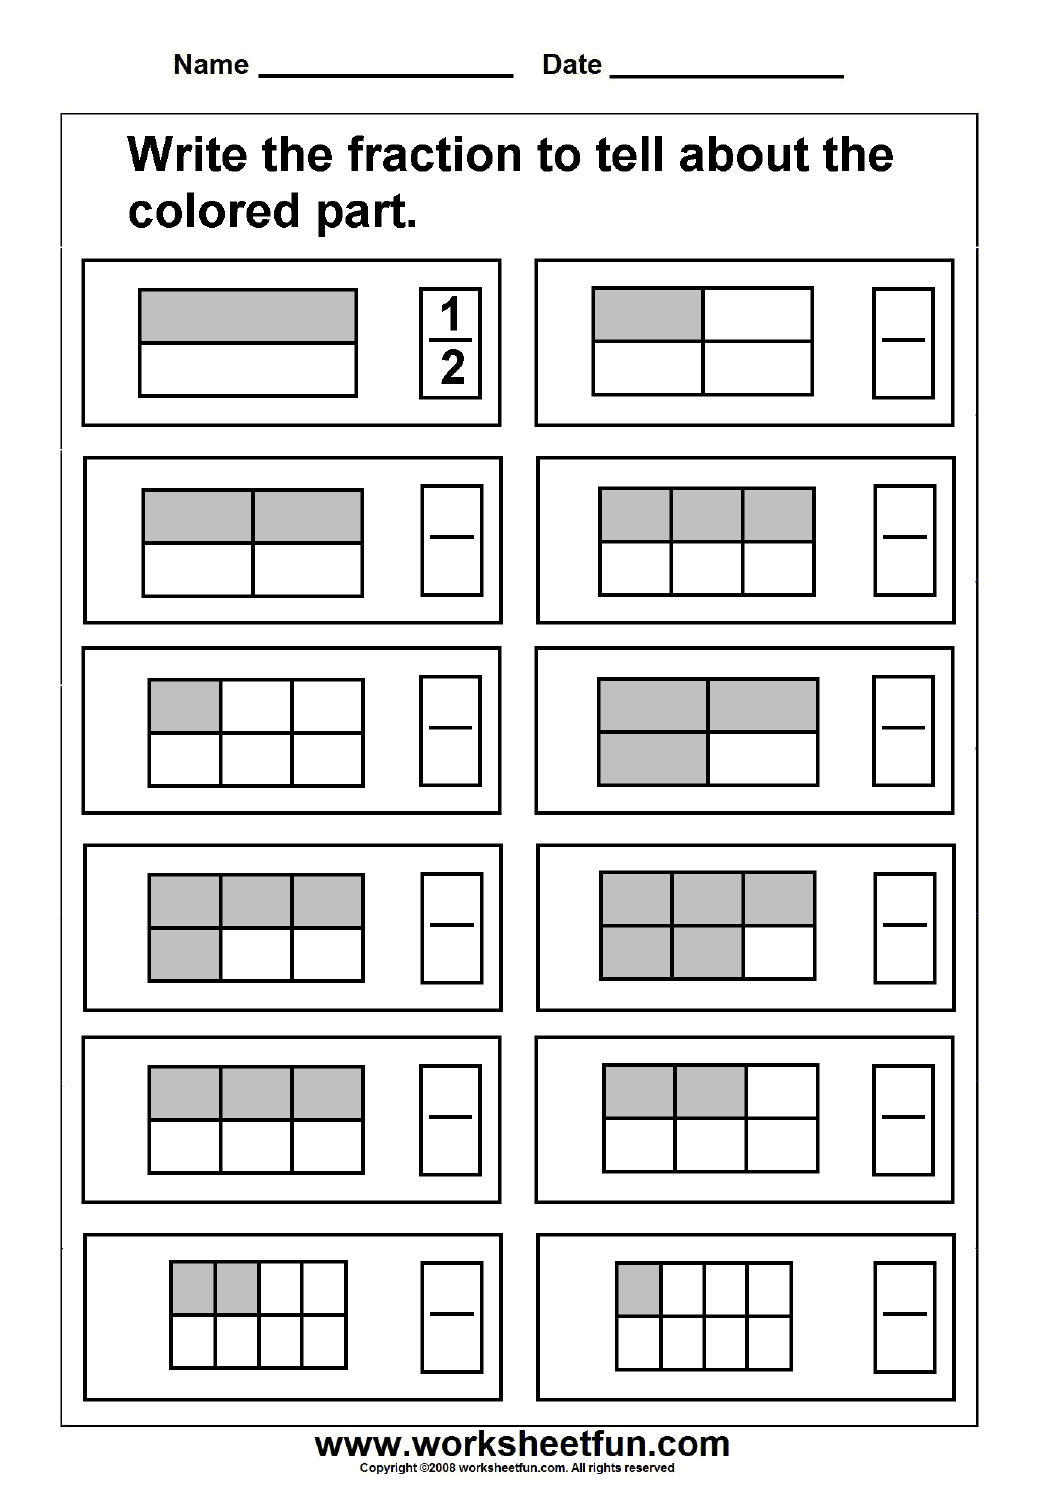 Fraction FREE Printable Worksheets Worksheetfun – Fractions Worksheets Online